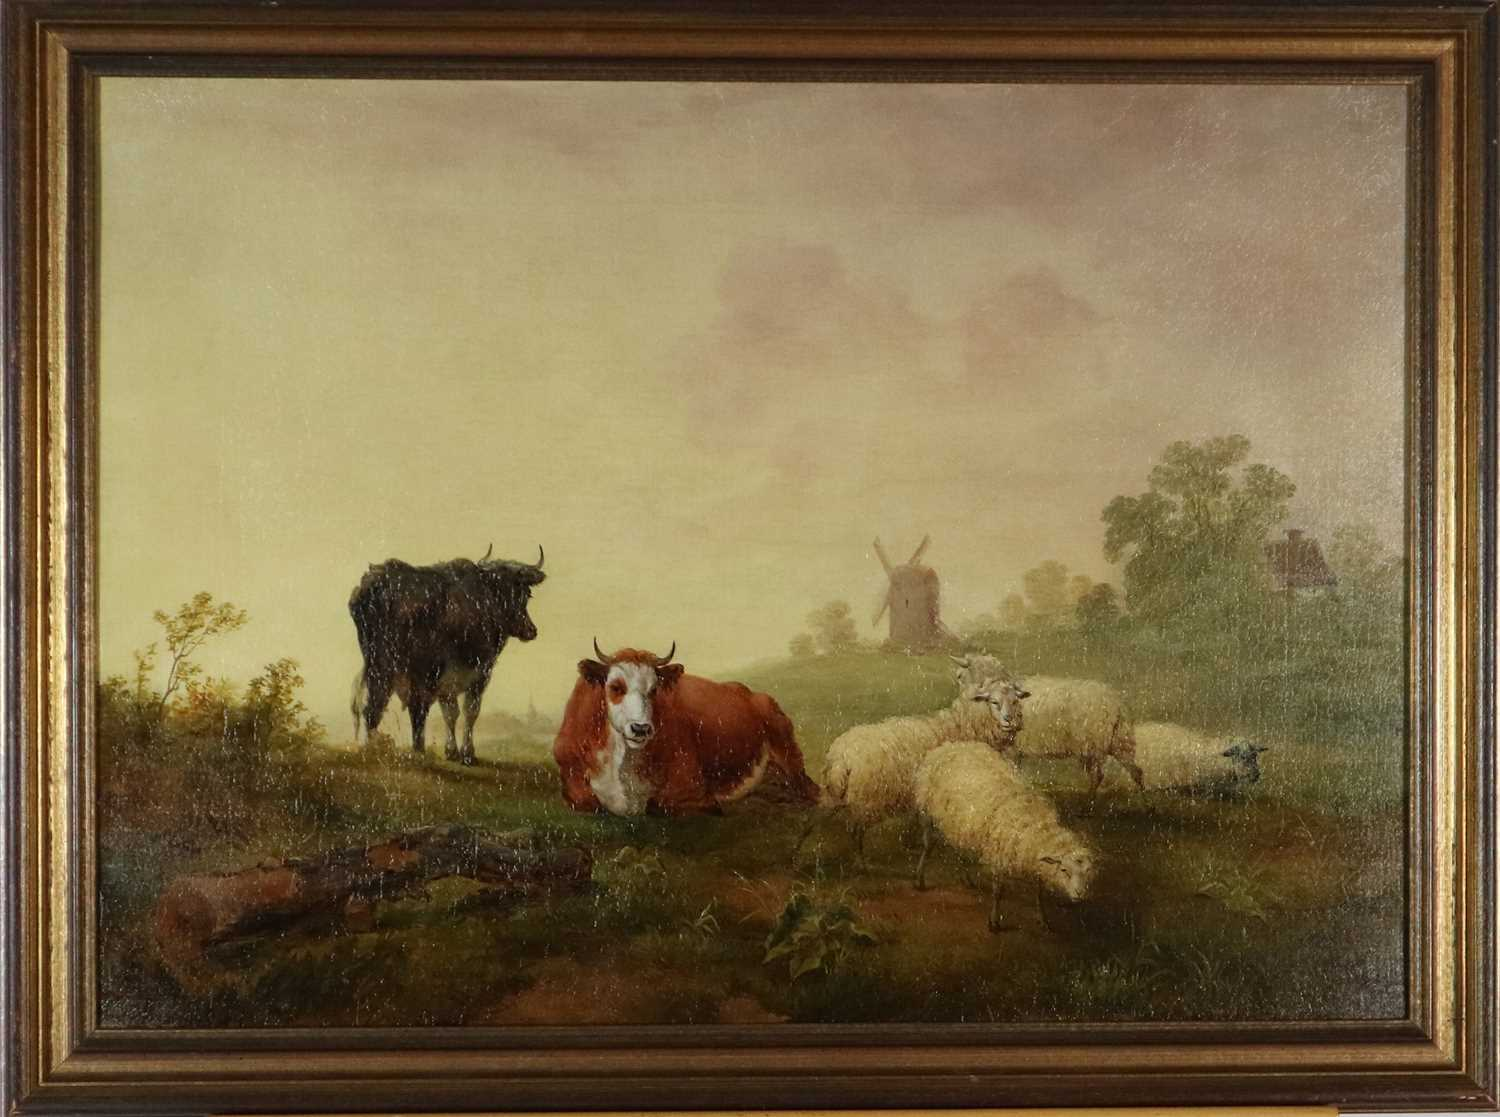 Manner of Thomas Sidney Cooper (British 1803-1902) Cattle and Sheep in Pasture oil on canvas - Image 2 of 3